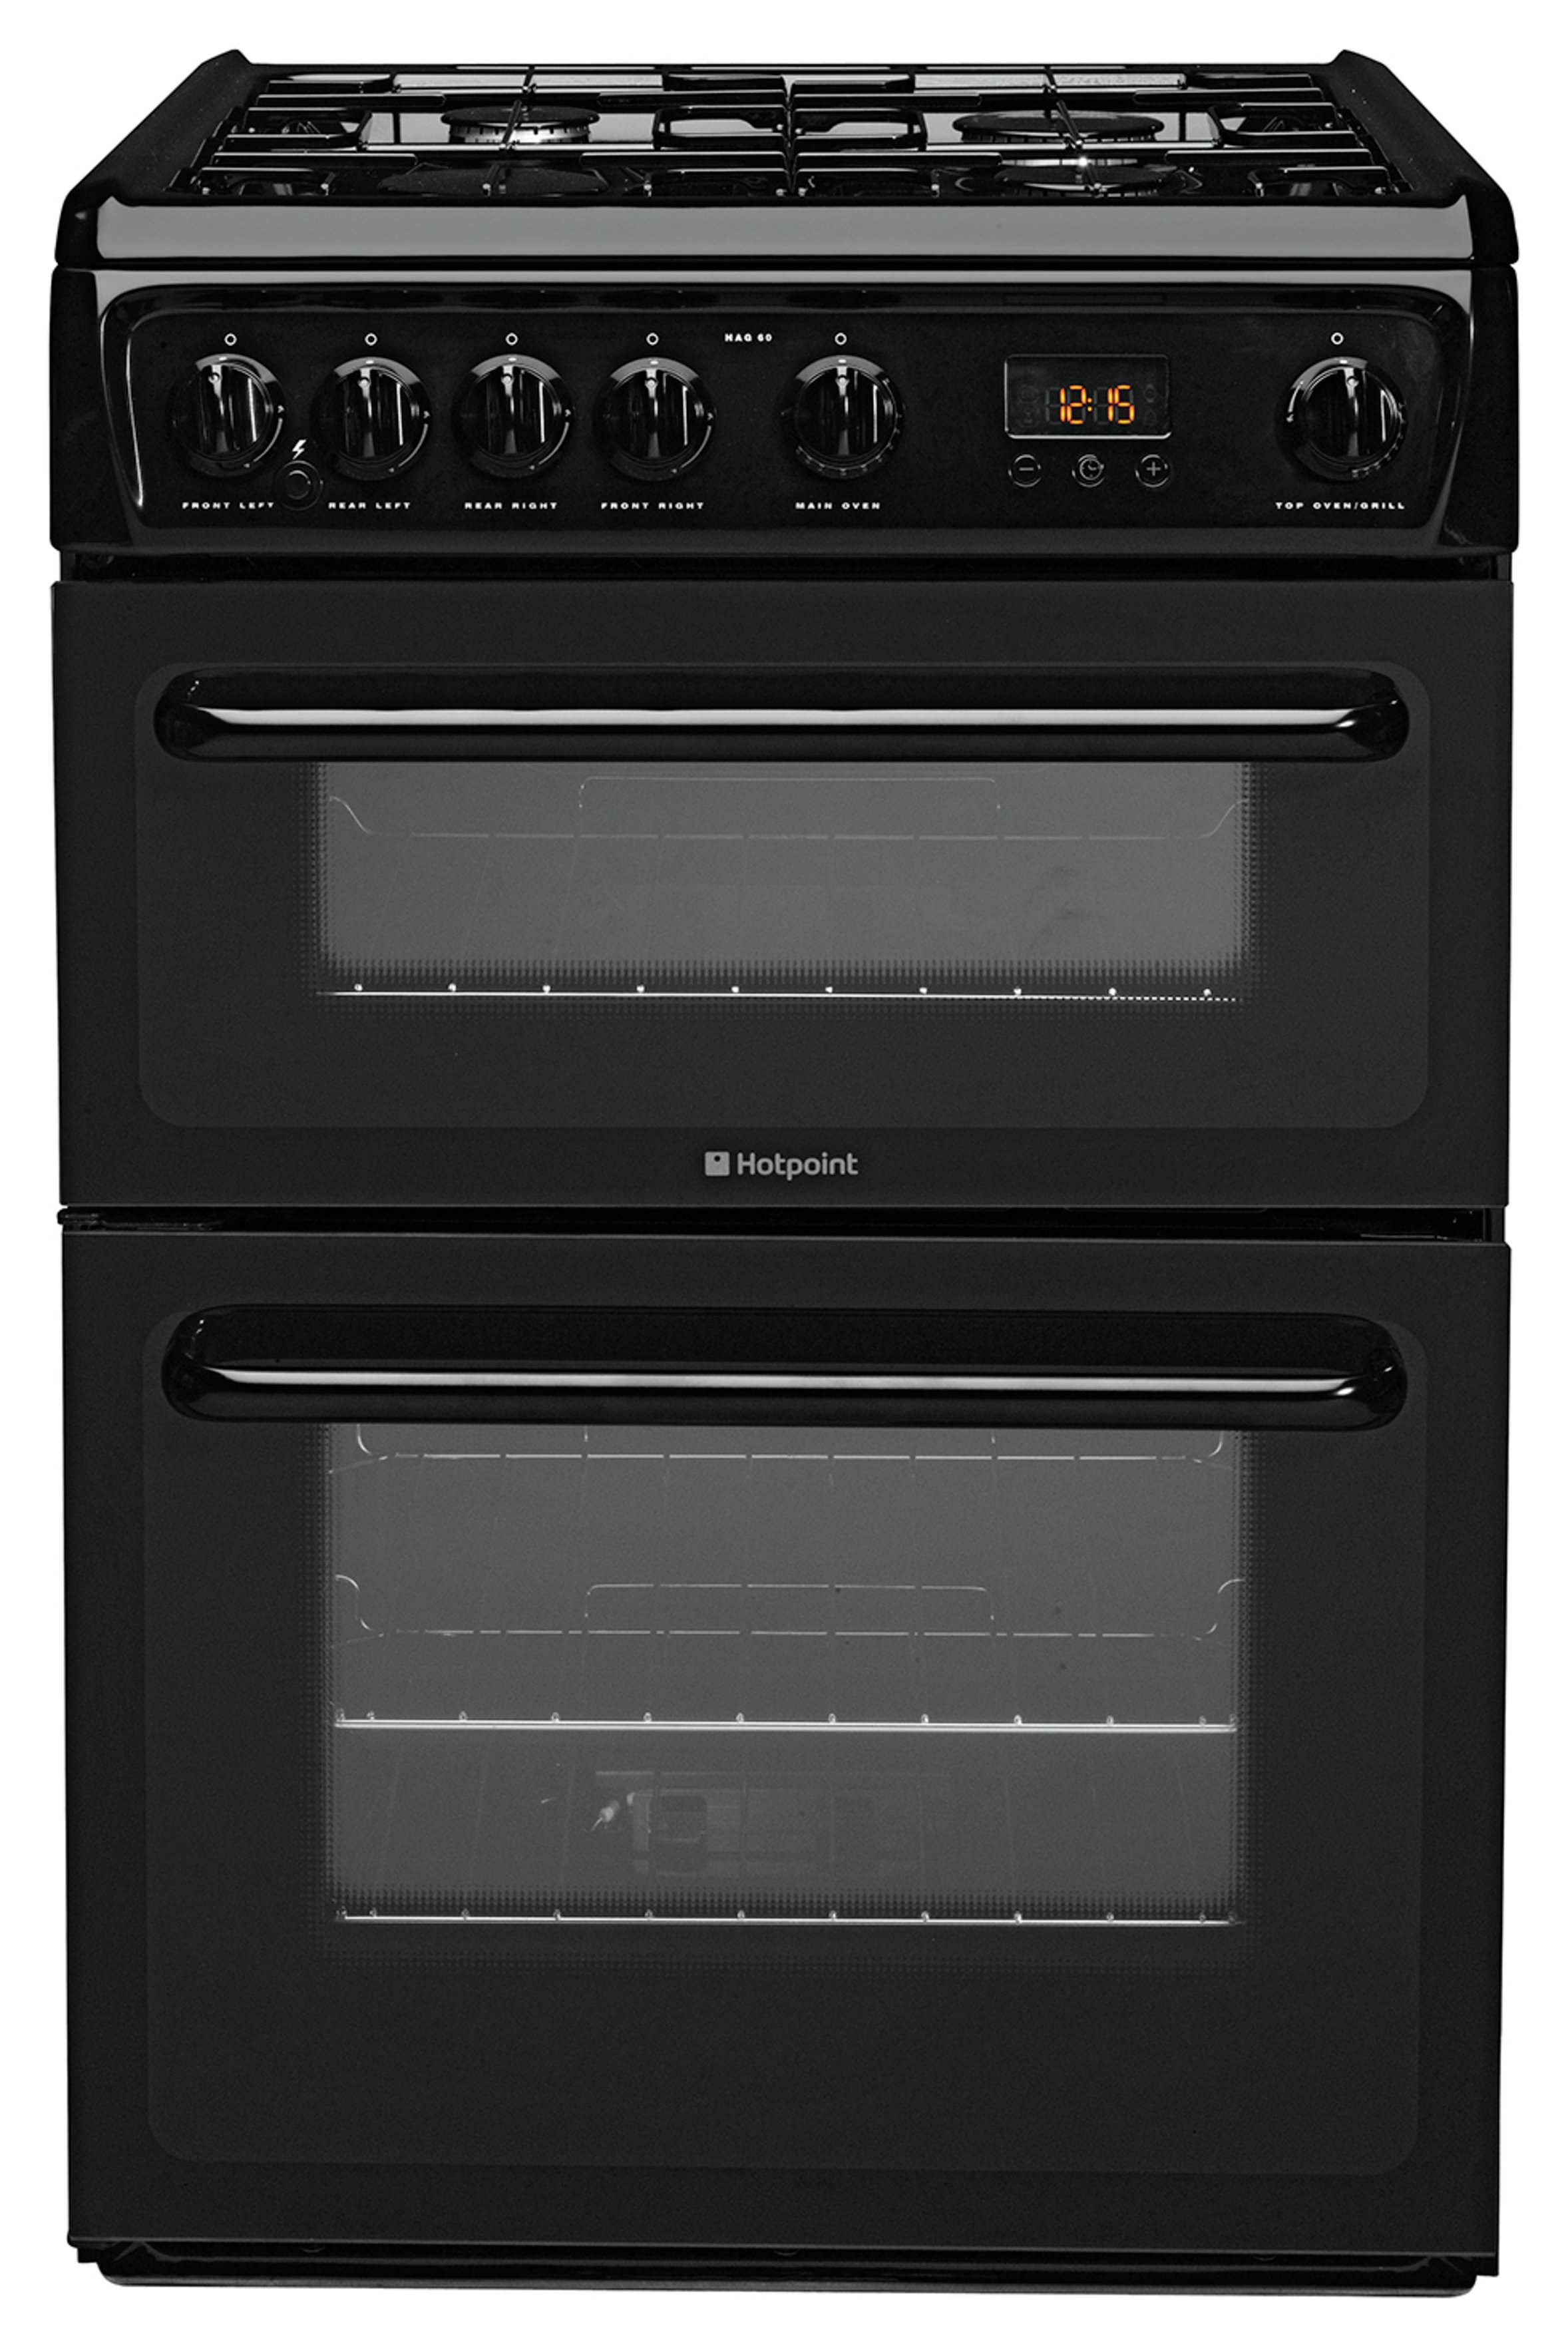 Hotpoint HAG60K Freestanding Double Gas Cooker - Black.